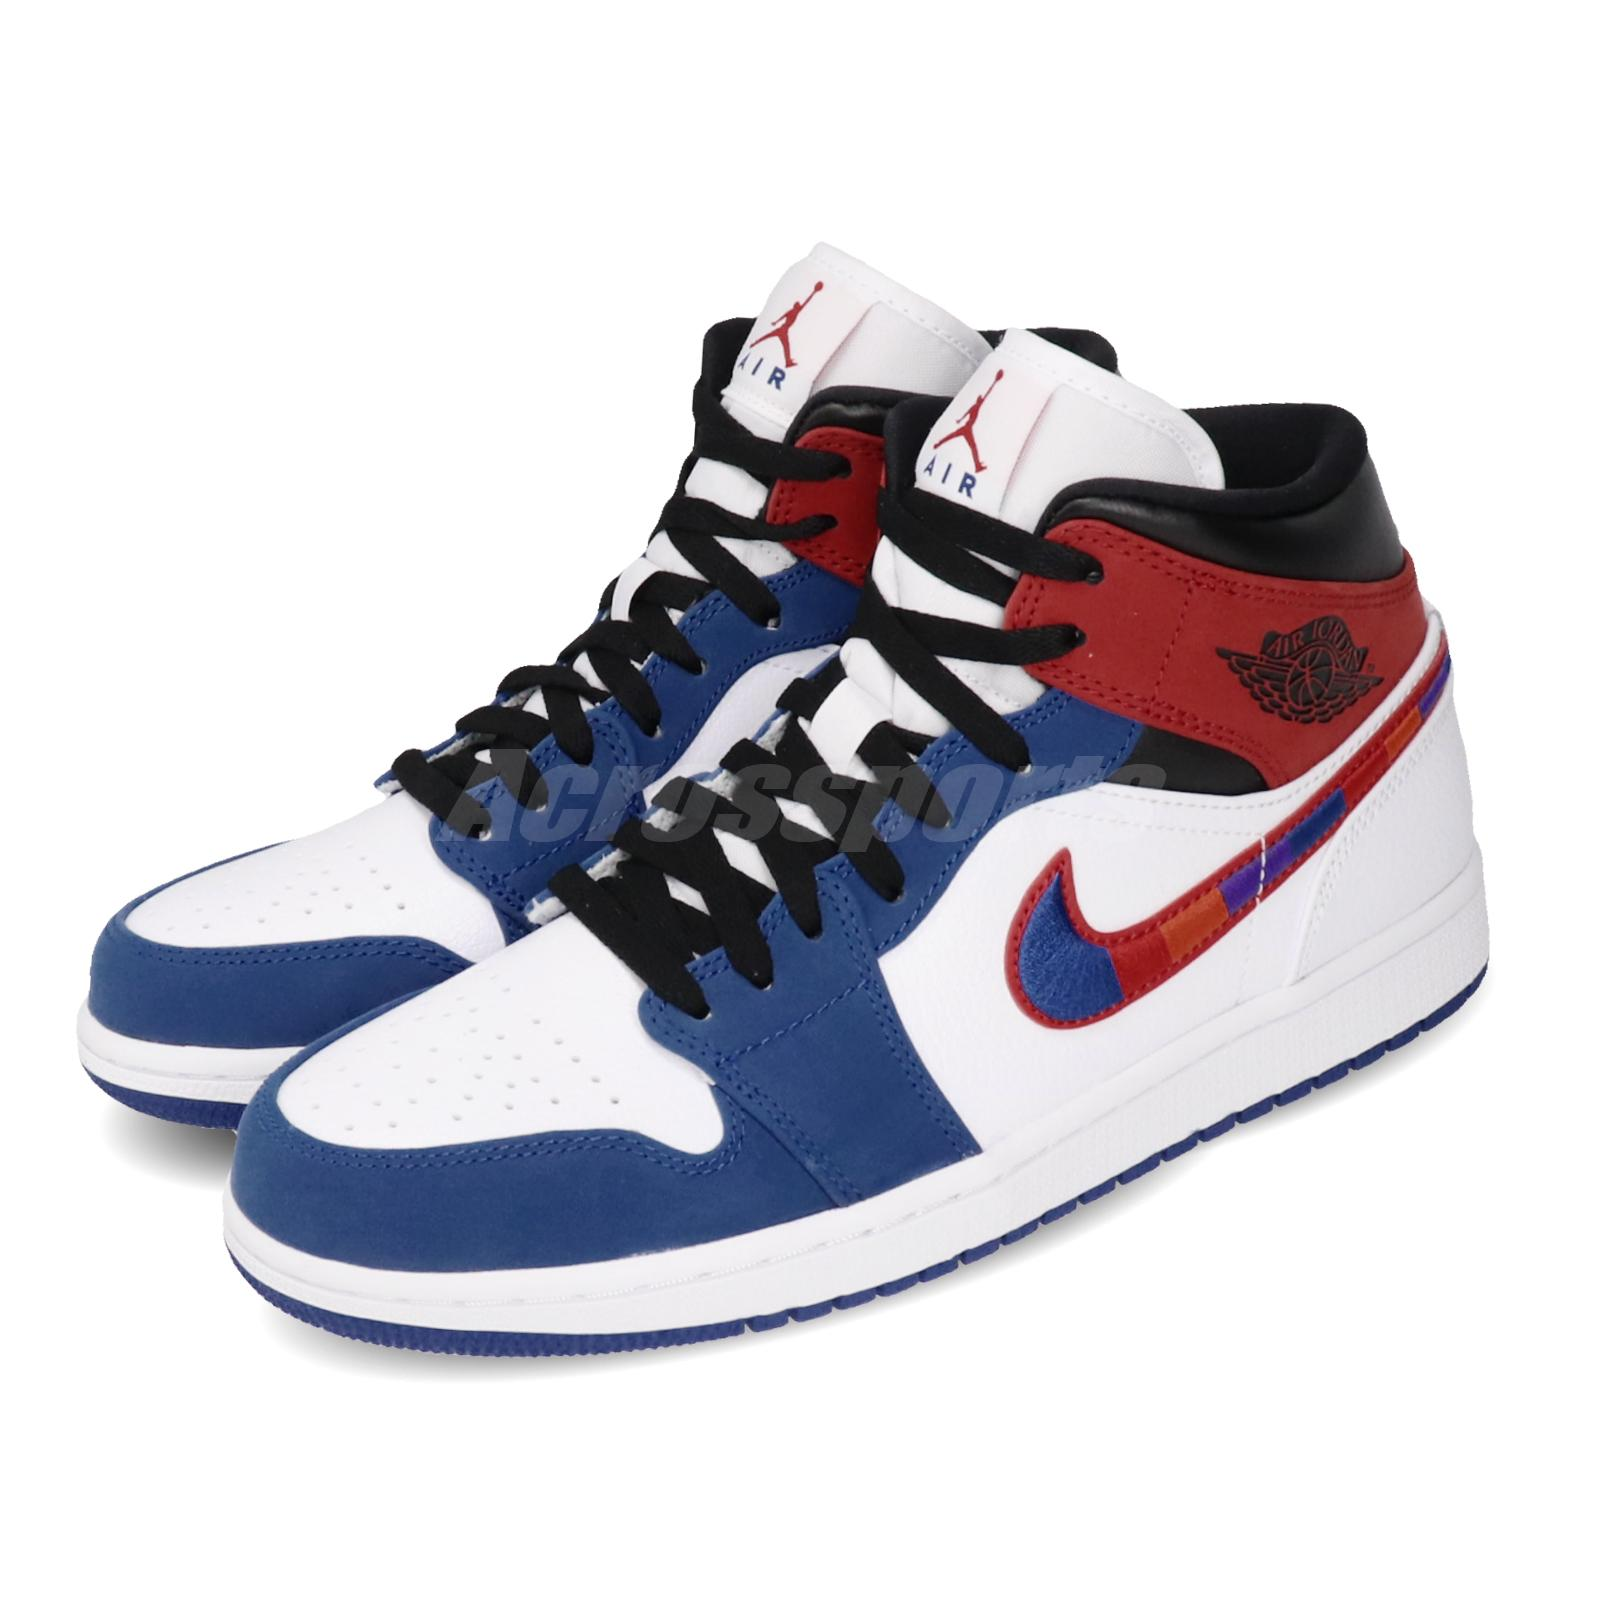 Nike Air Jordan 1 Mid SE Multicolored Swoosh AJ1 White Red Blue